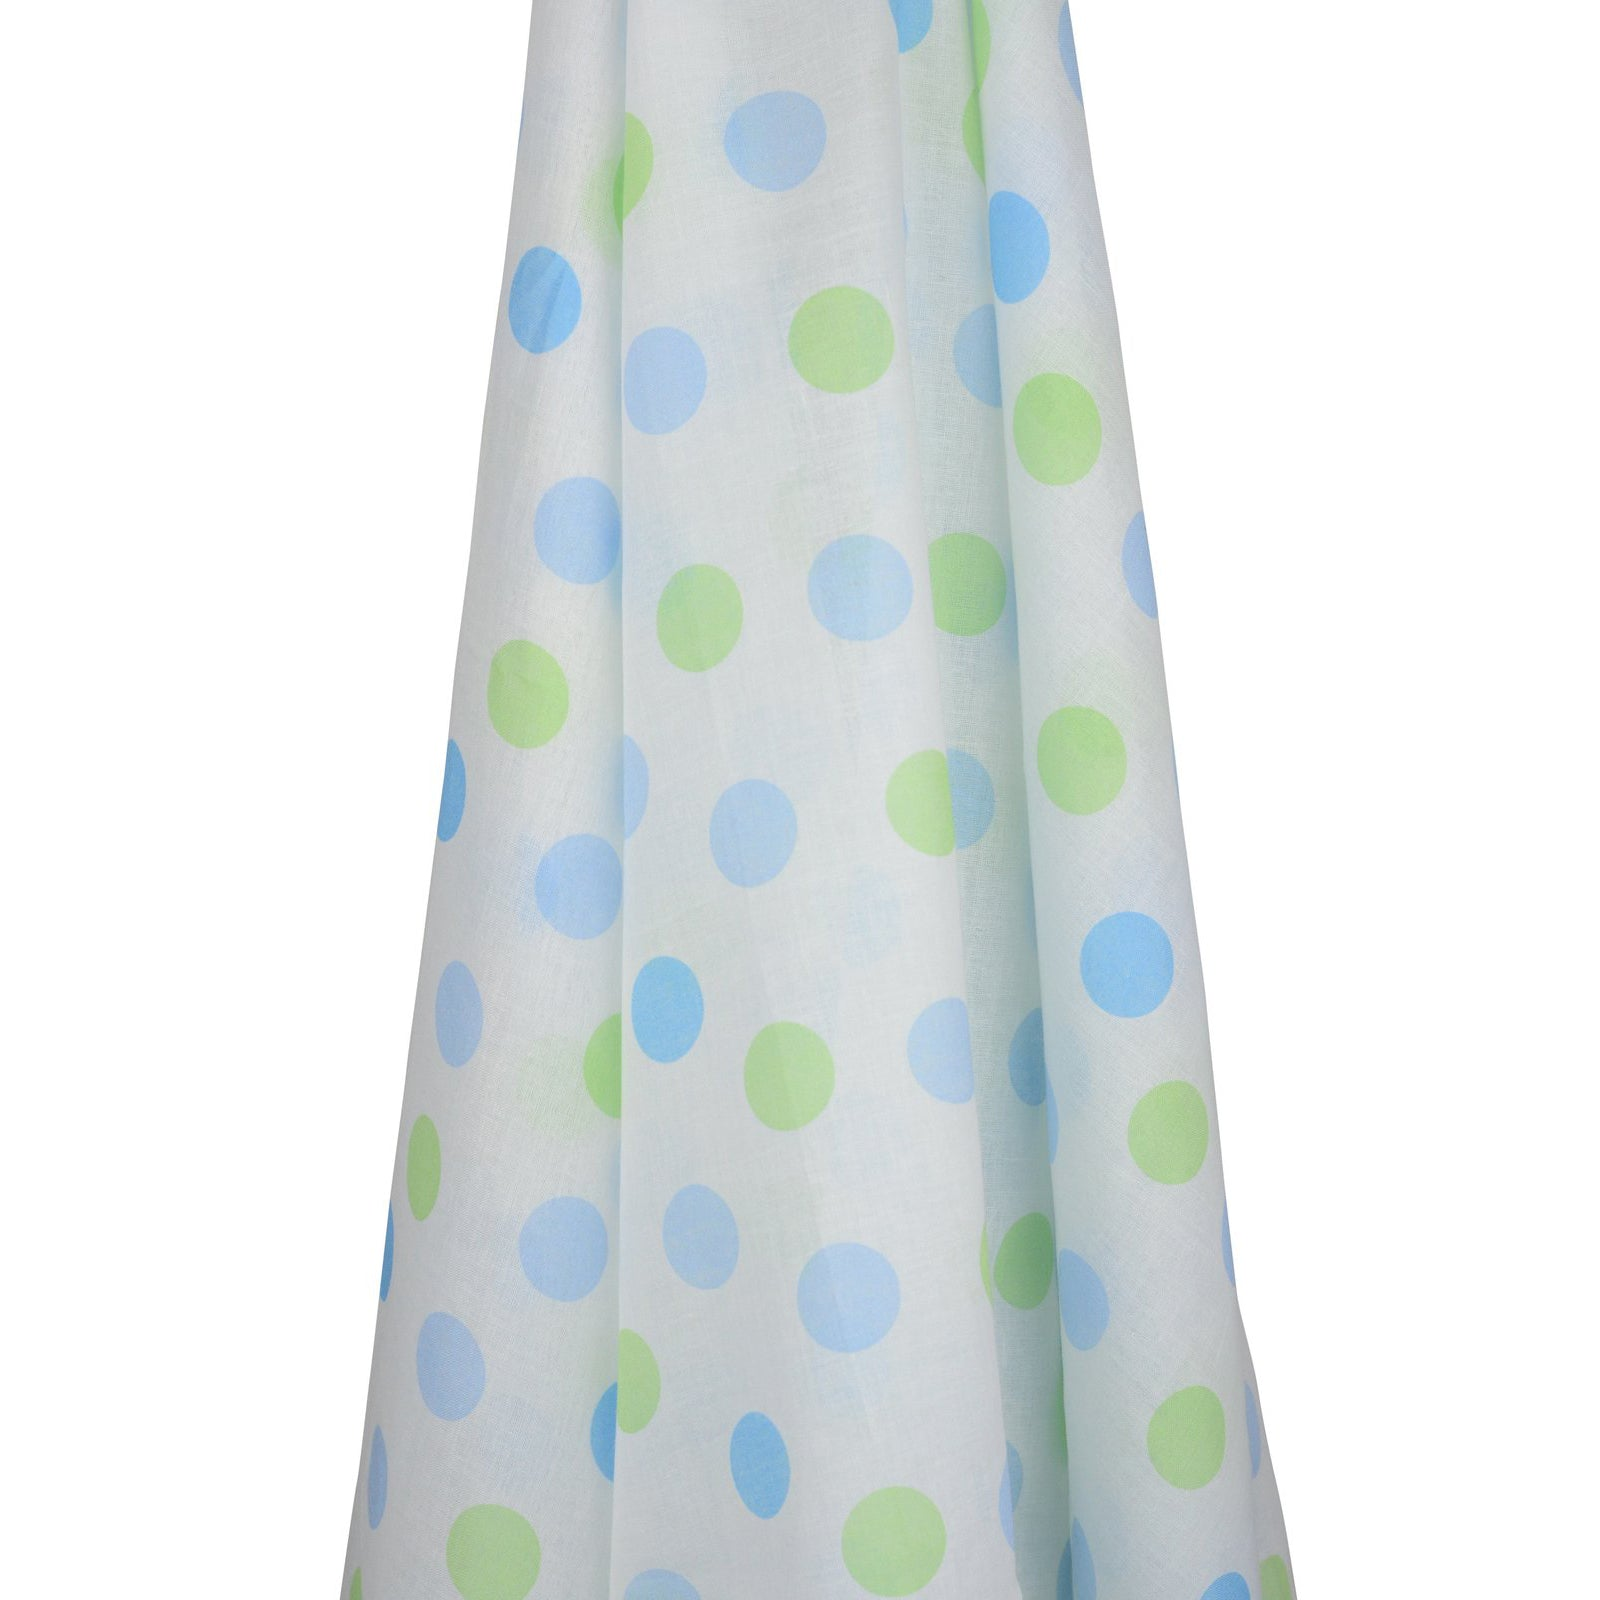 emotion & kids muslin spot gelati blue - Chalk